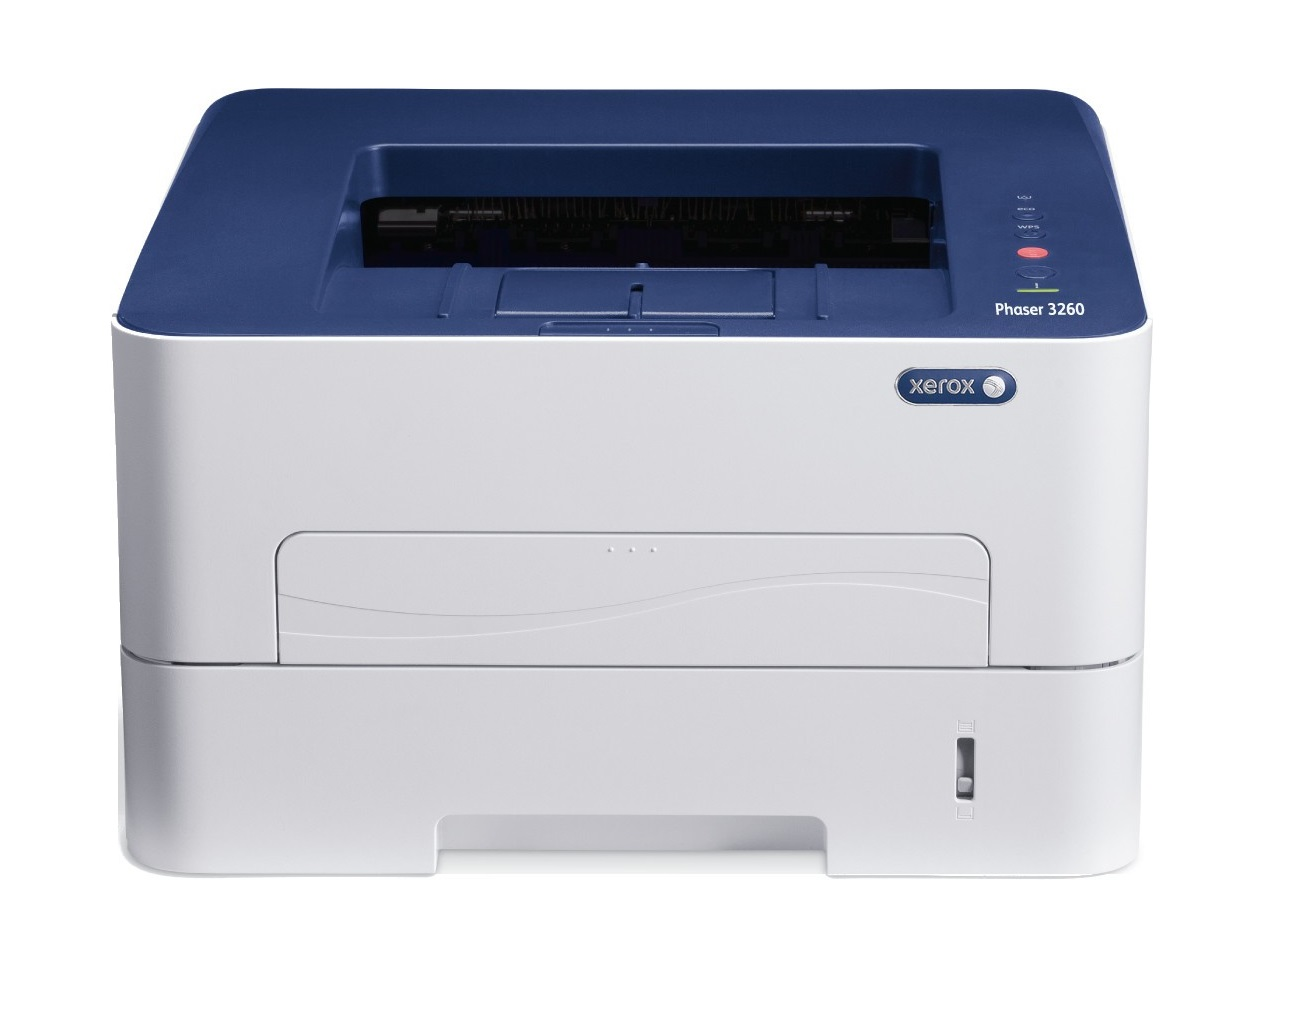 Xerox Phaser 3260, A4 BW tiskárna, 29ppm, PS/PCL, Ethernet, Wifi